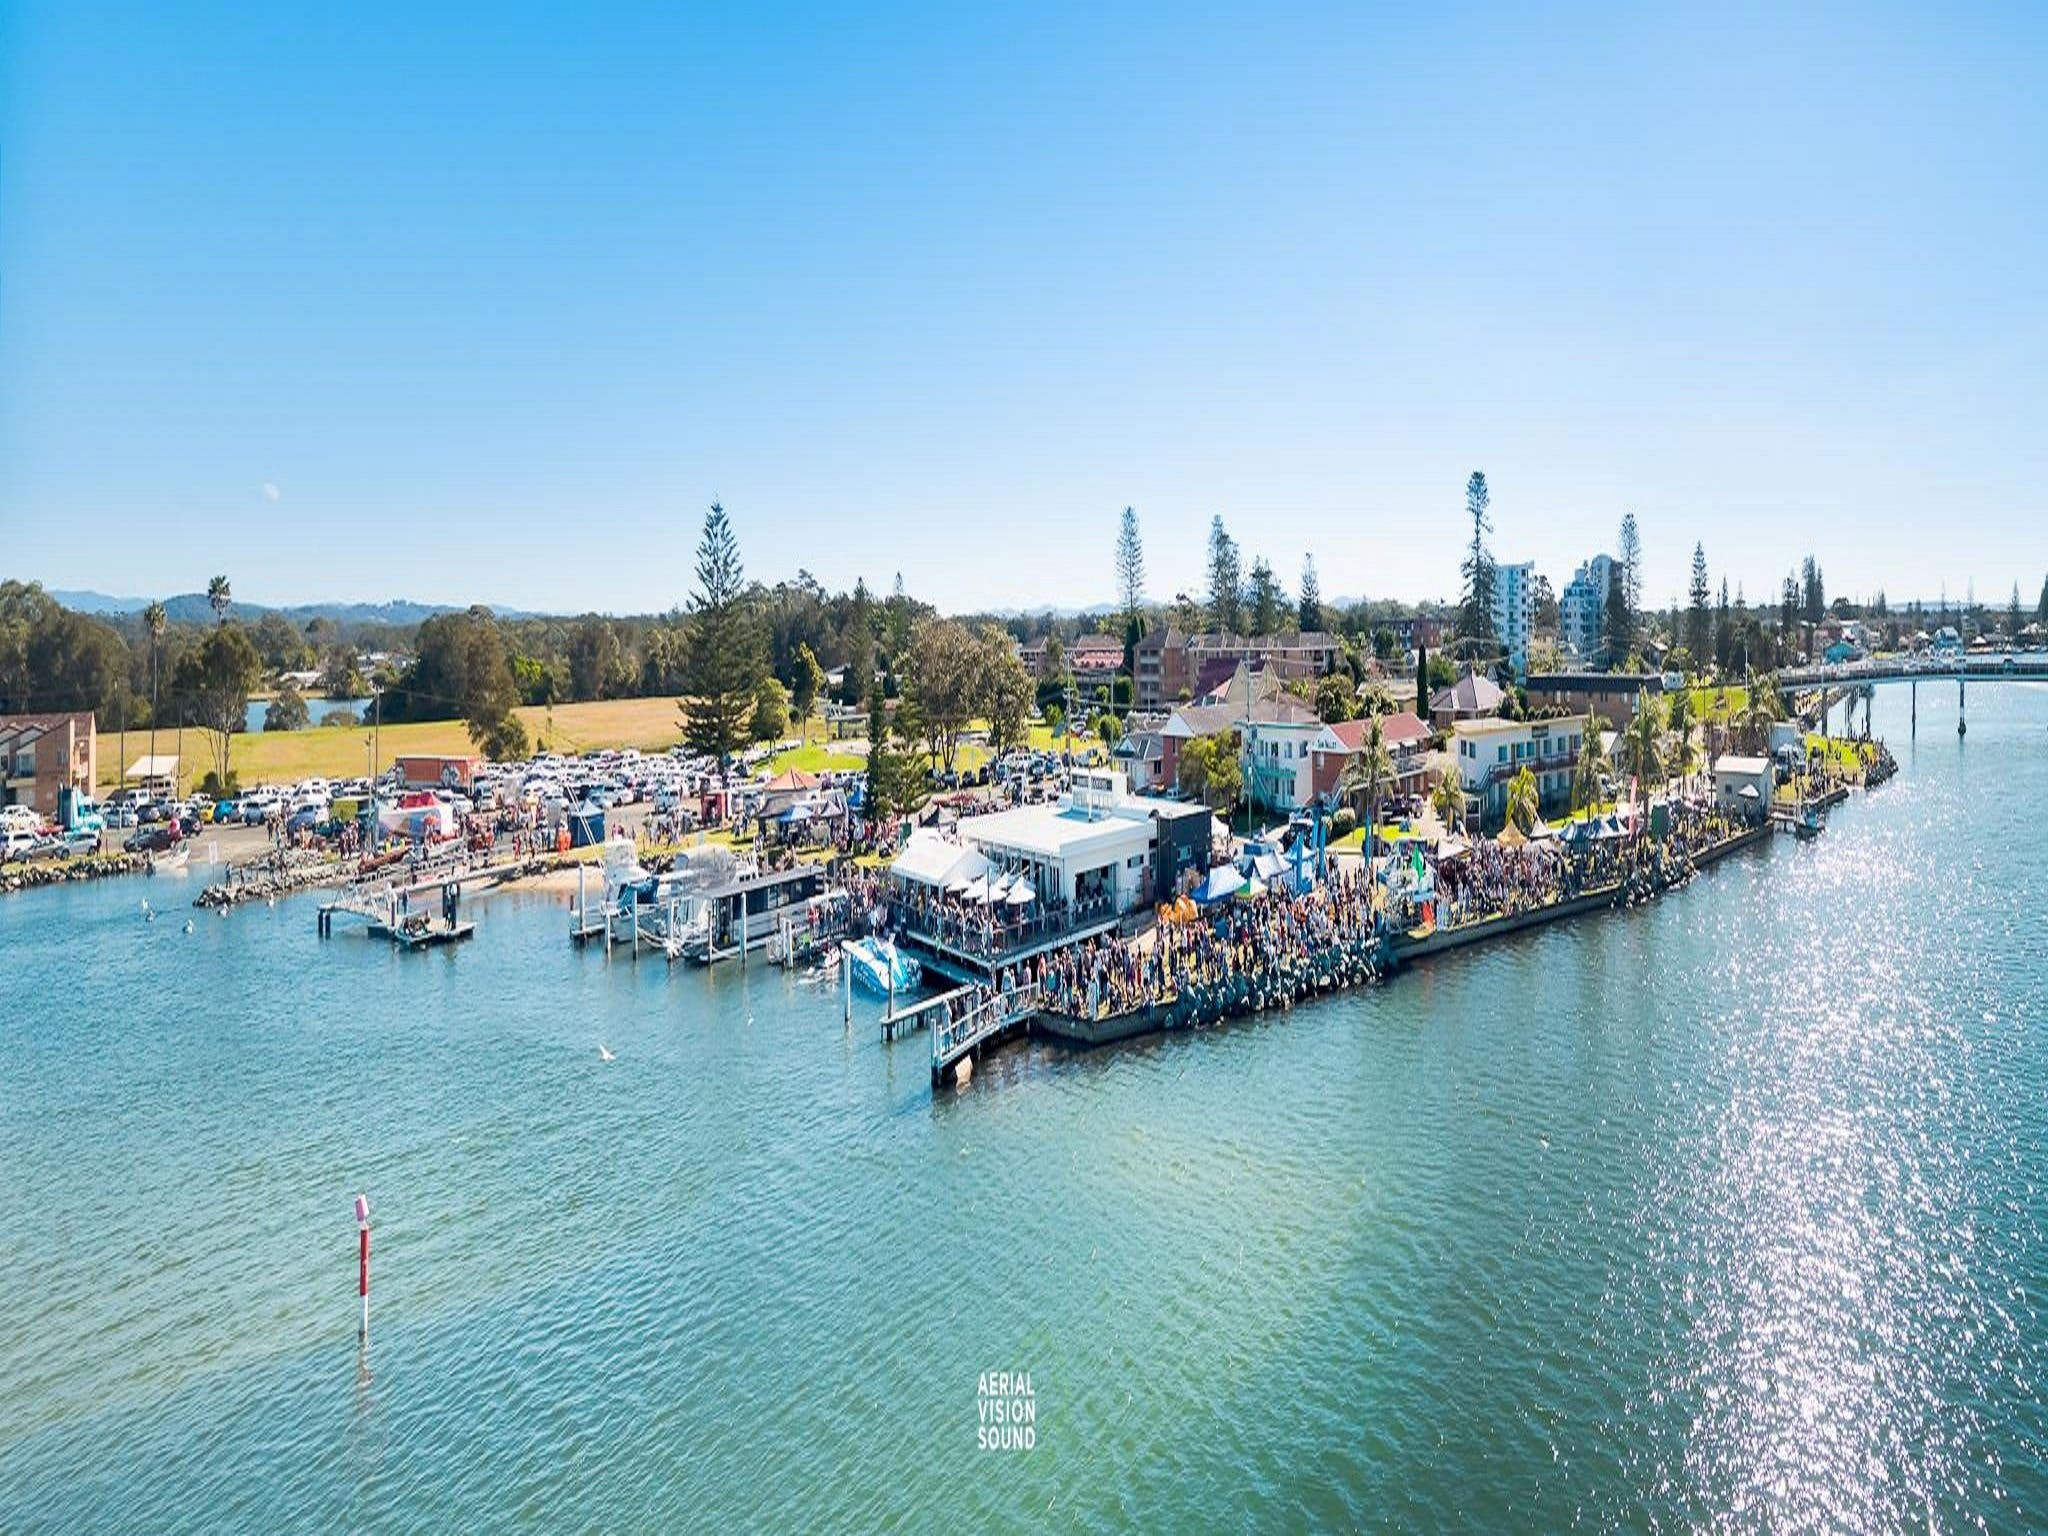 Fred Williams Aquatic Festival - Accommodation Yamba